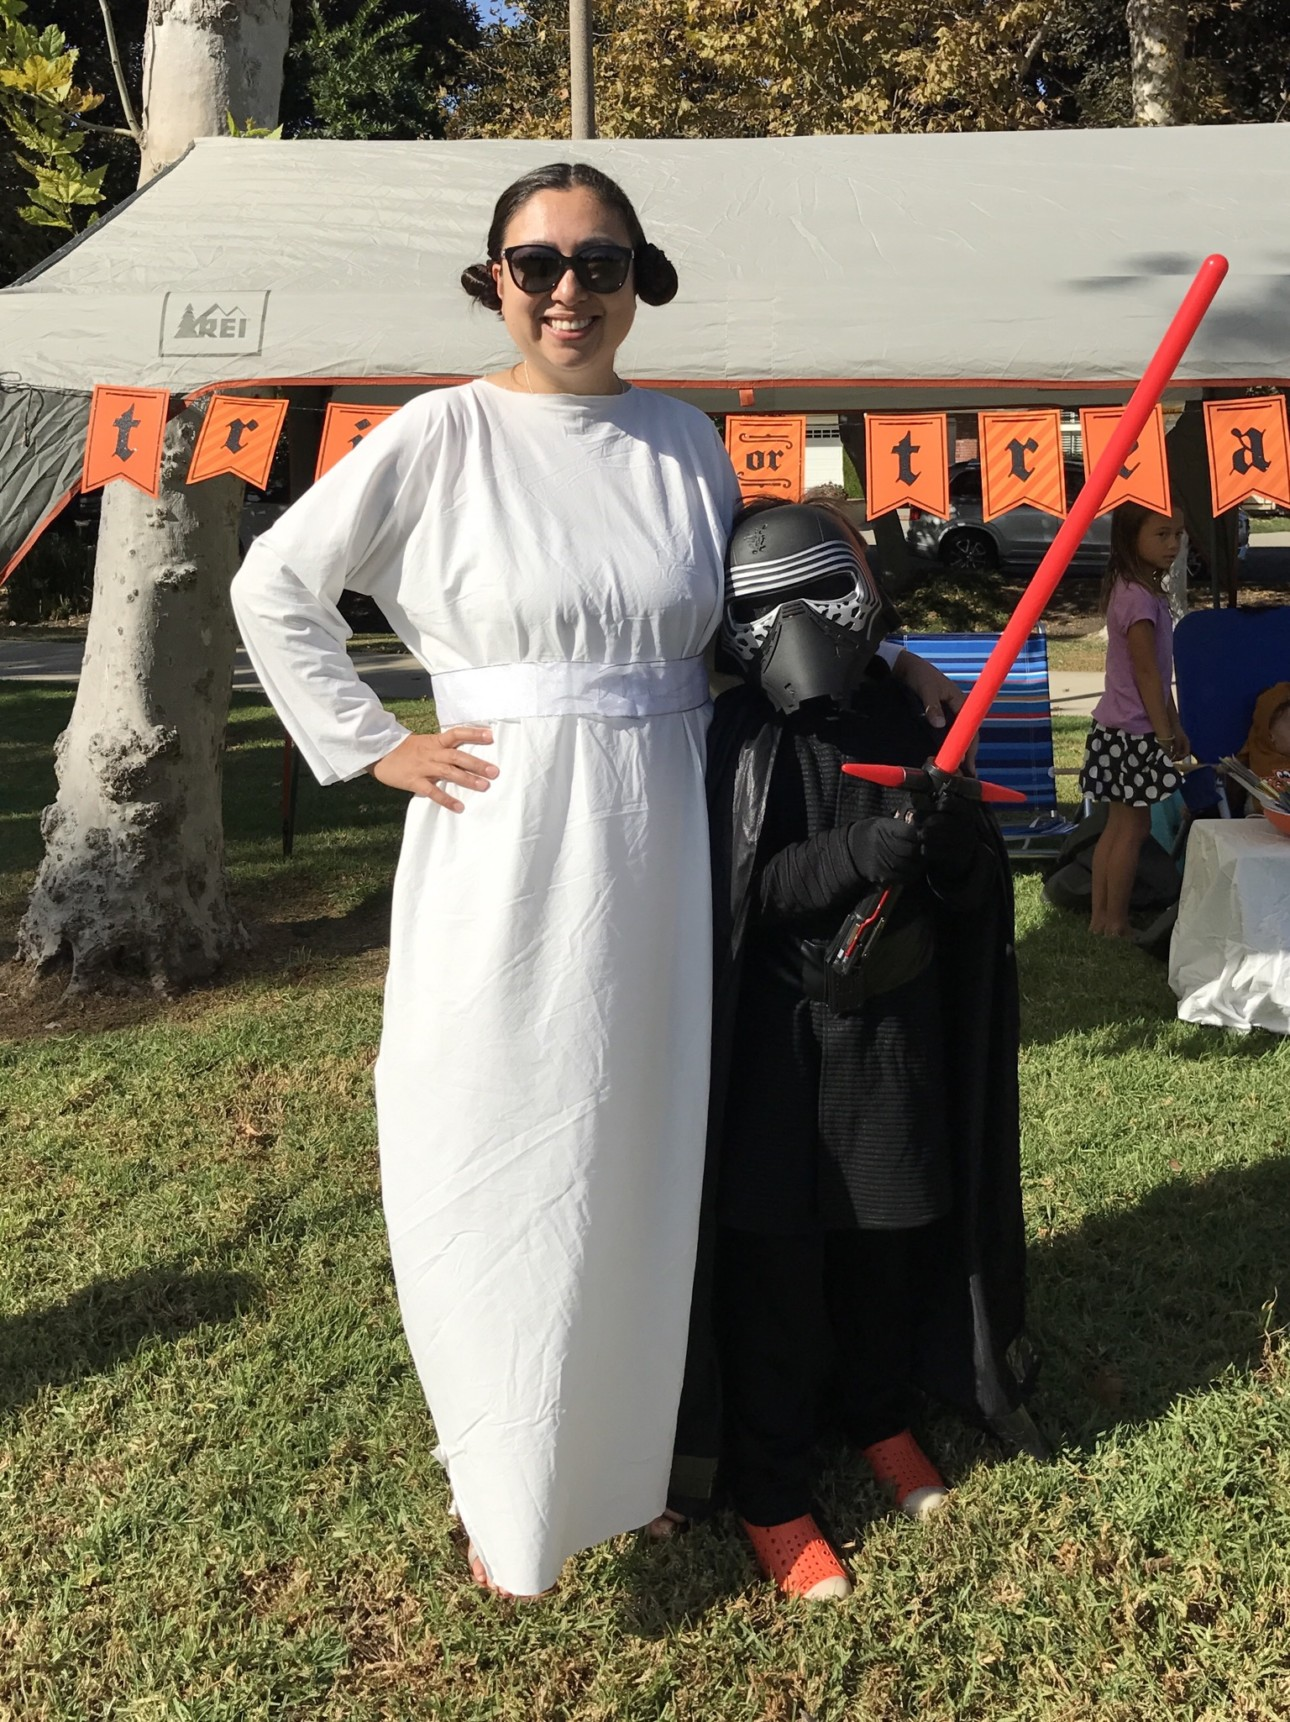 sc 1 st  Anaheim Moms Blog - City Moms Blog Network & DIY No Sew Easy Princess Leia Costume (Eco-Friendly and Cheap Too!)